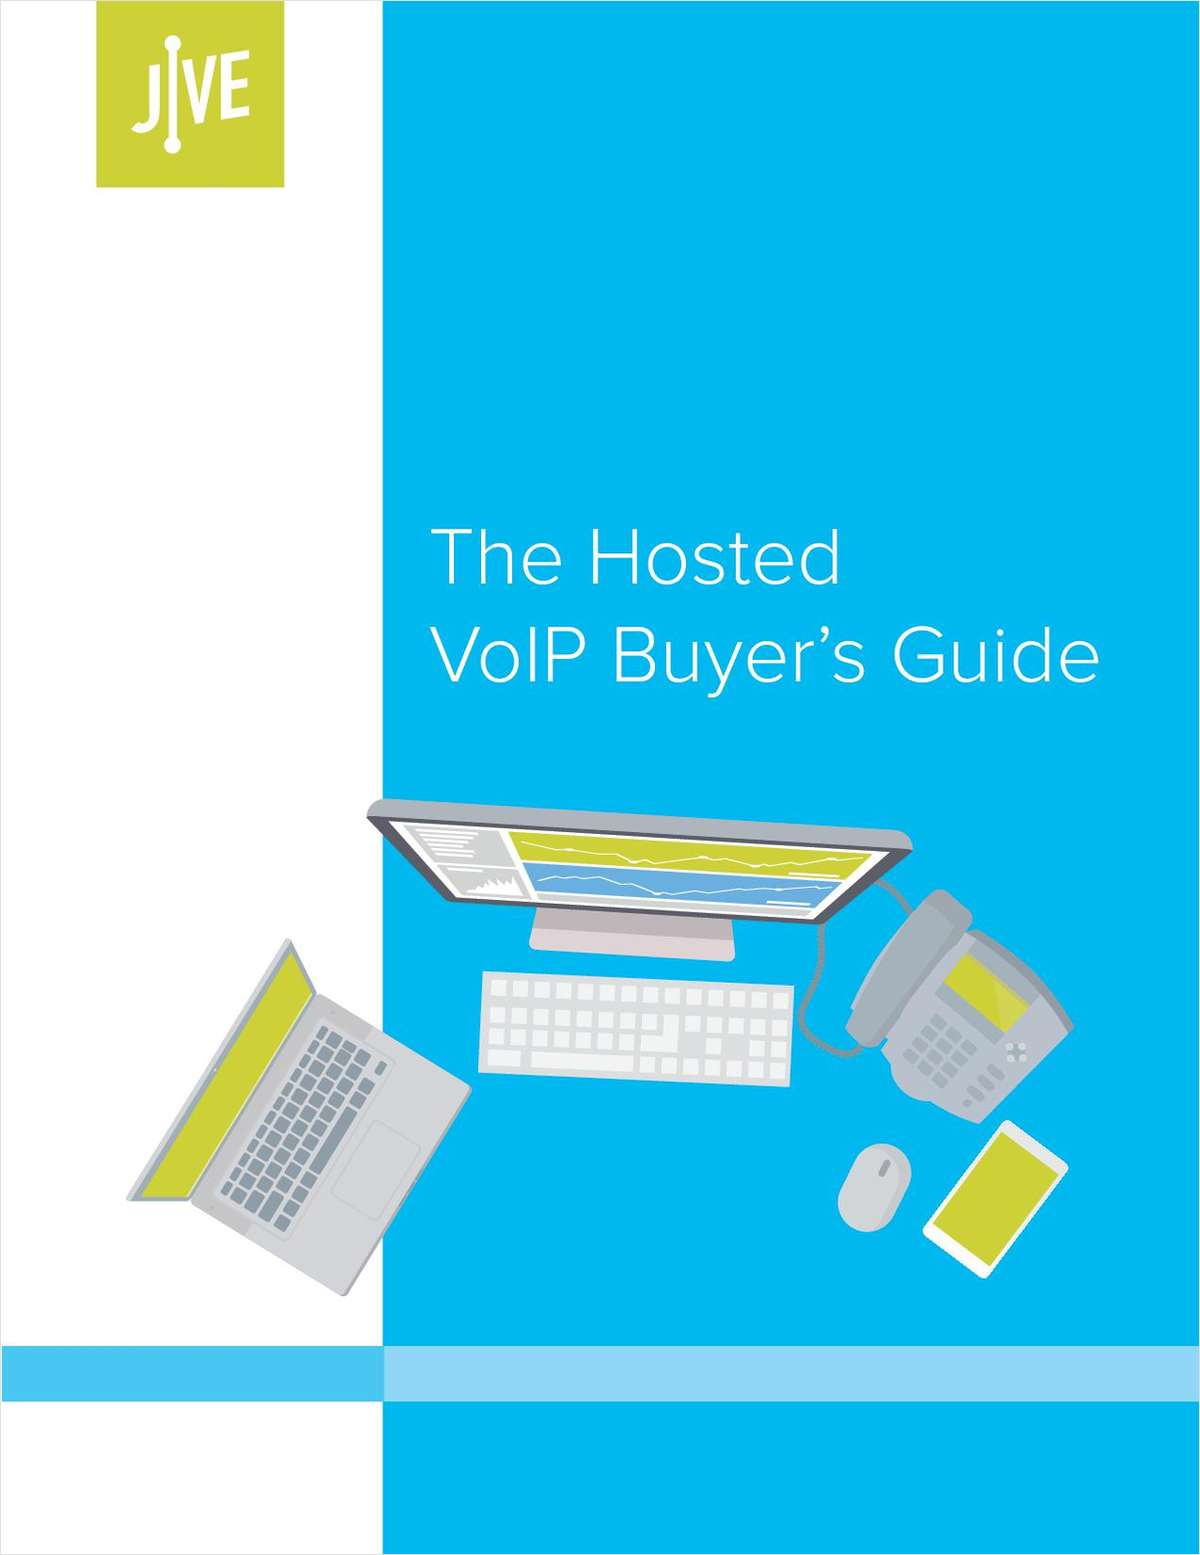 The Hosted VoIP Buyer's Guide